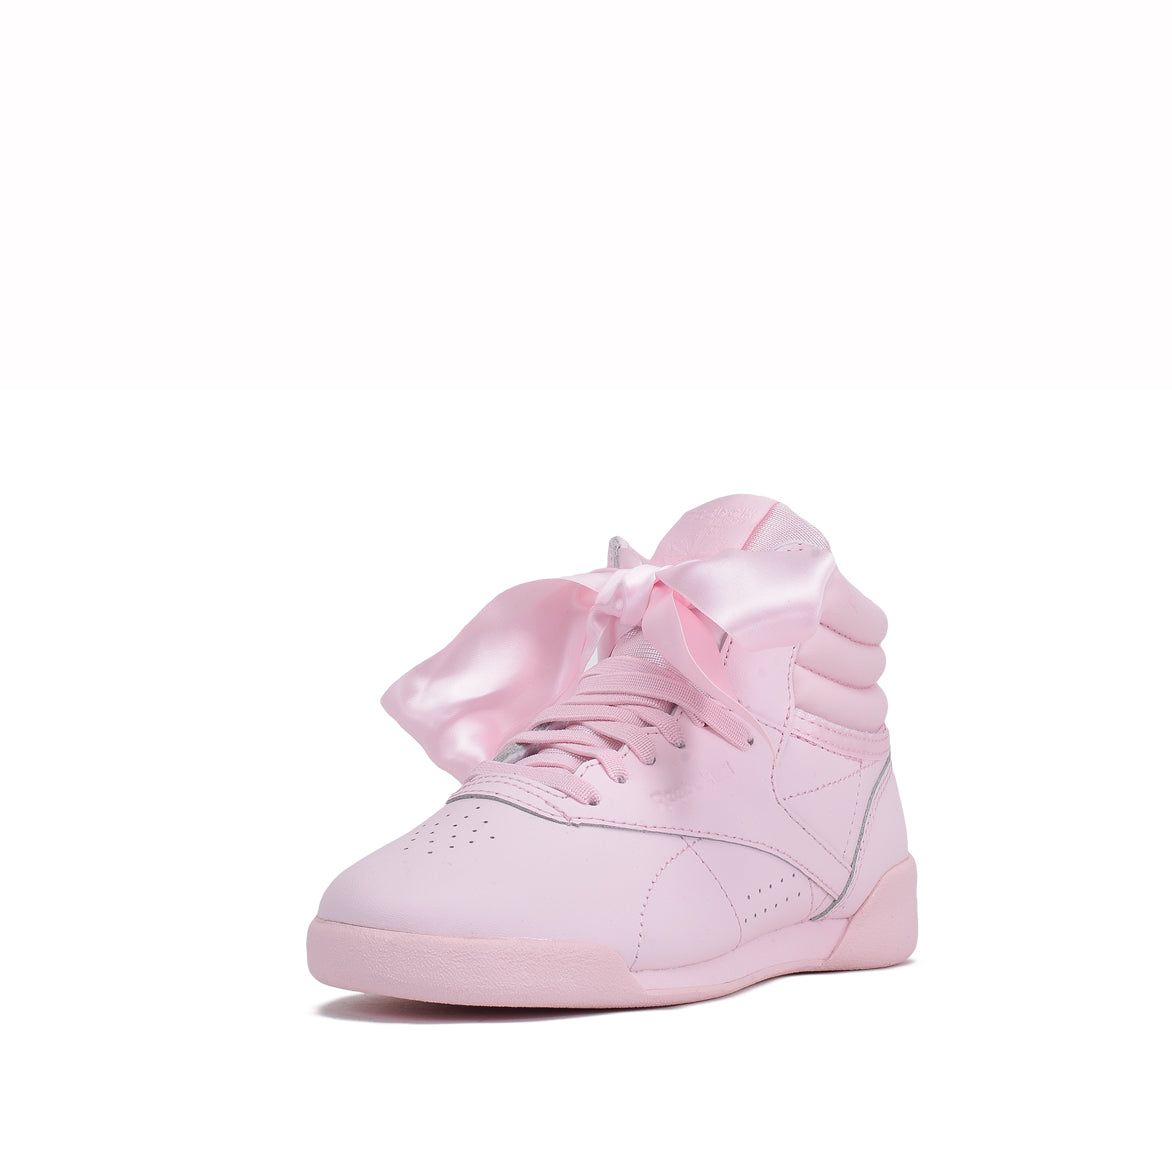 WMNS FREESTYLE HIGH SATIN BOW (KIDS) - PORCELAIN PINK